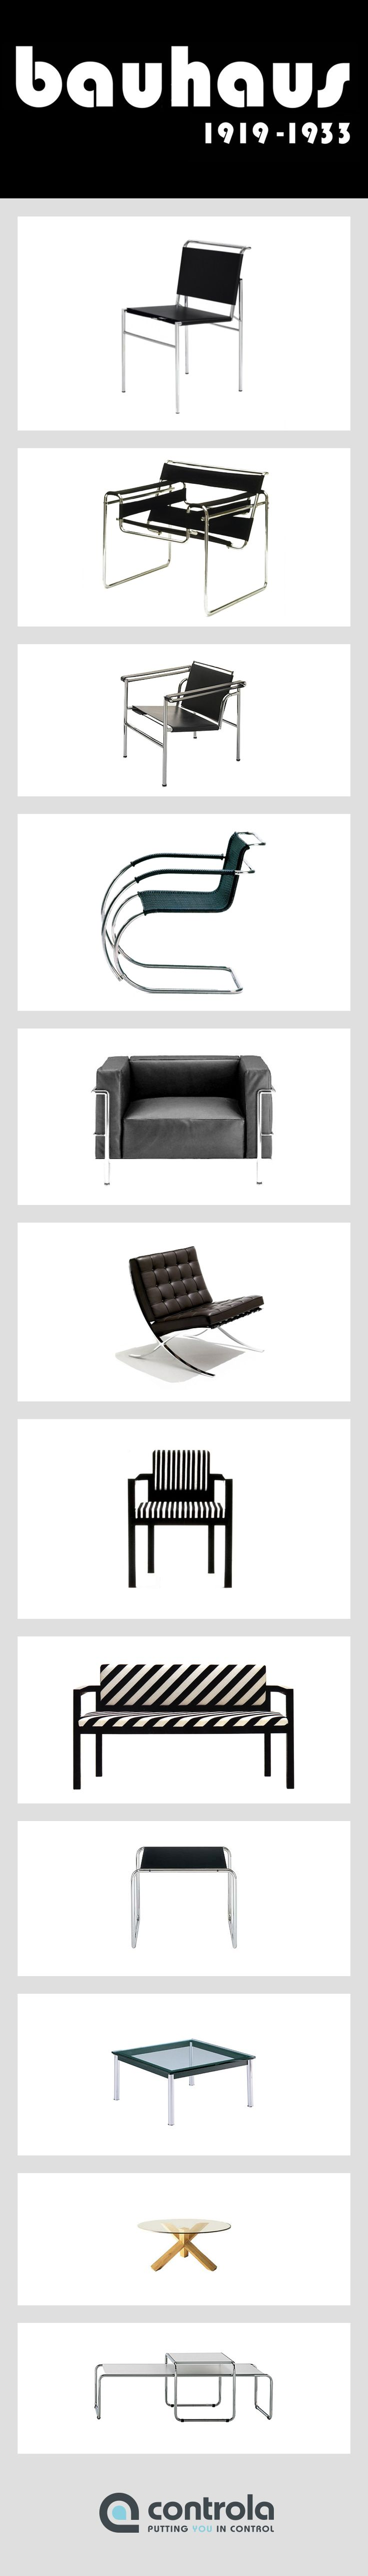 #bauhaus furniture Did you know the Wassily chair was inspired by the handle bars of Wassily Khandinskys bicycle?